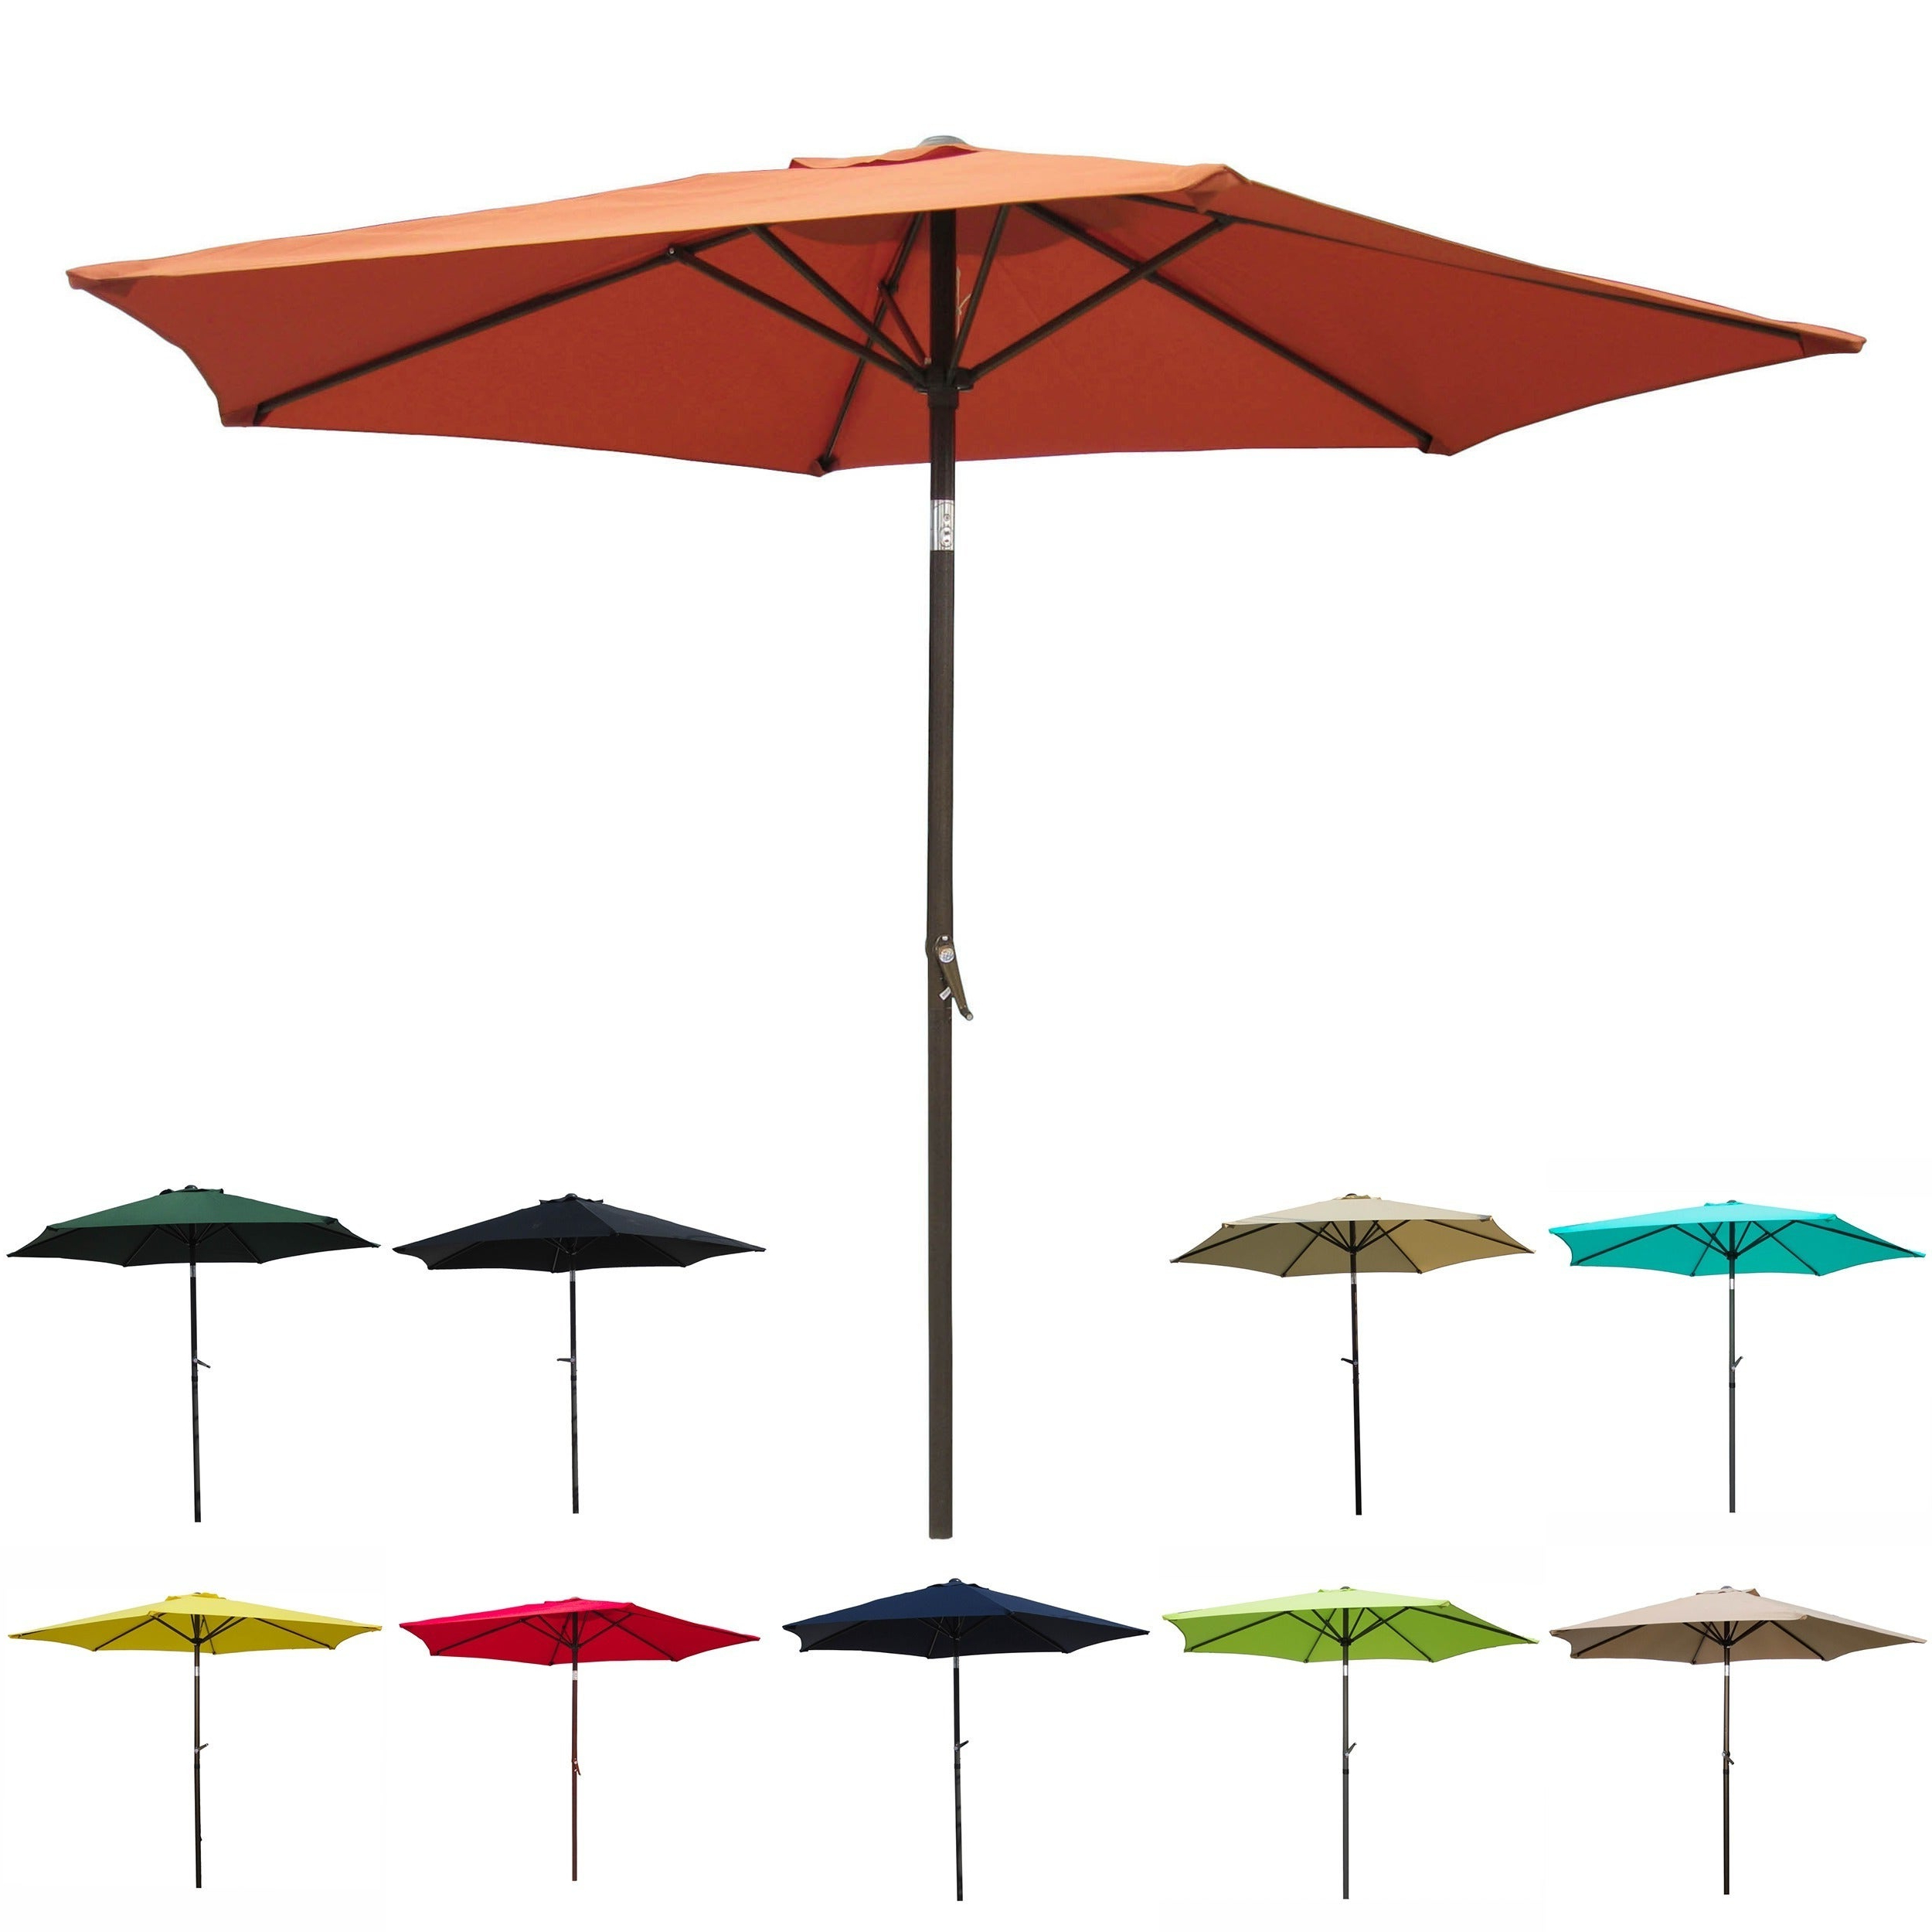 Patio Umbrella 8 Foot Within Well Known Frome Market Umbrellas (View 17 of 20)